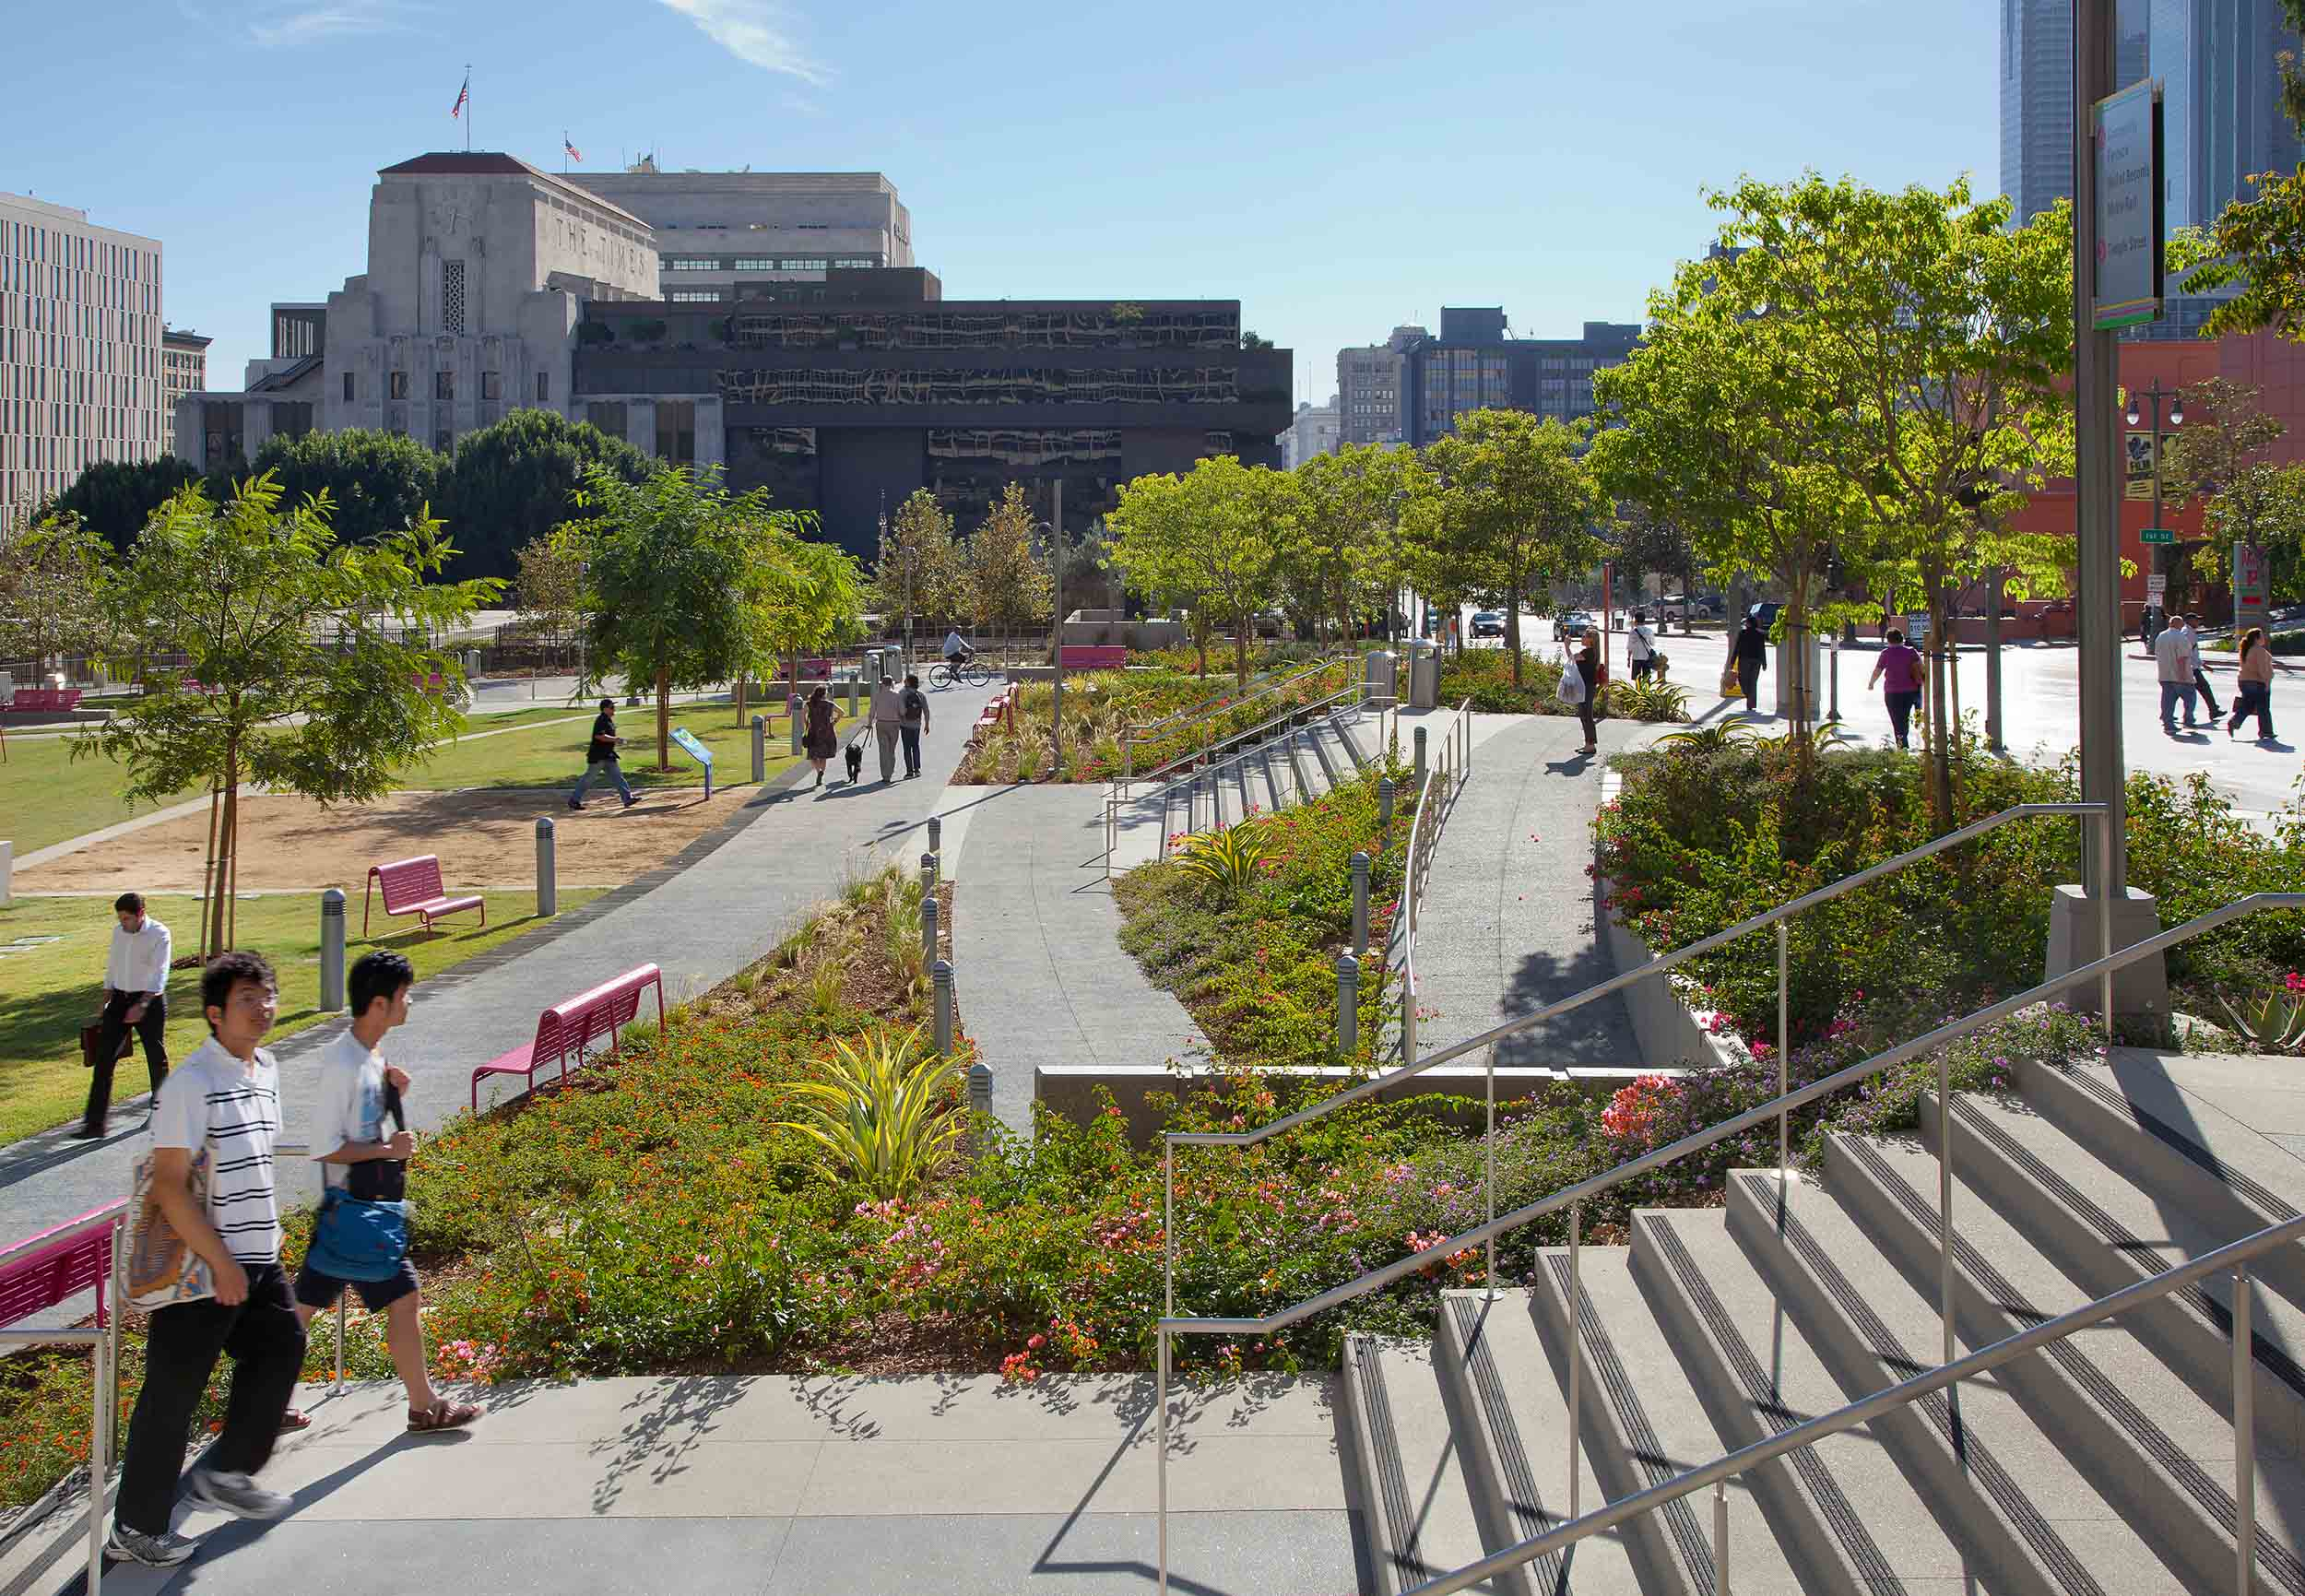 side view of people walking up stairs with intersecting curved paths in front of it, and plants along the sides of the stairs and paths